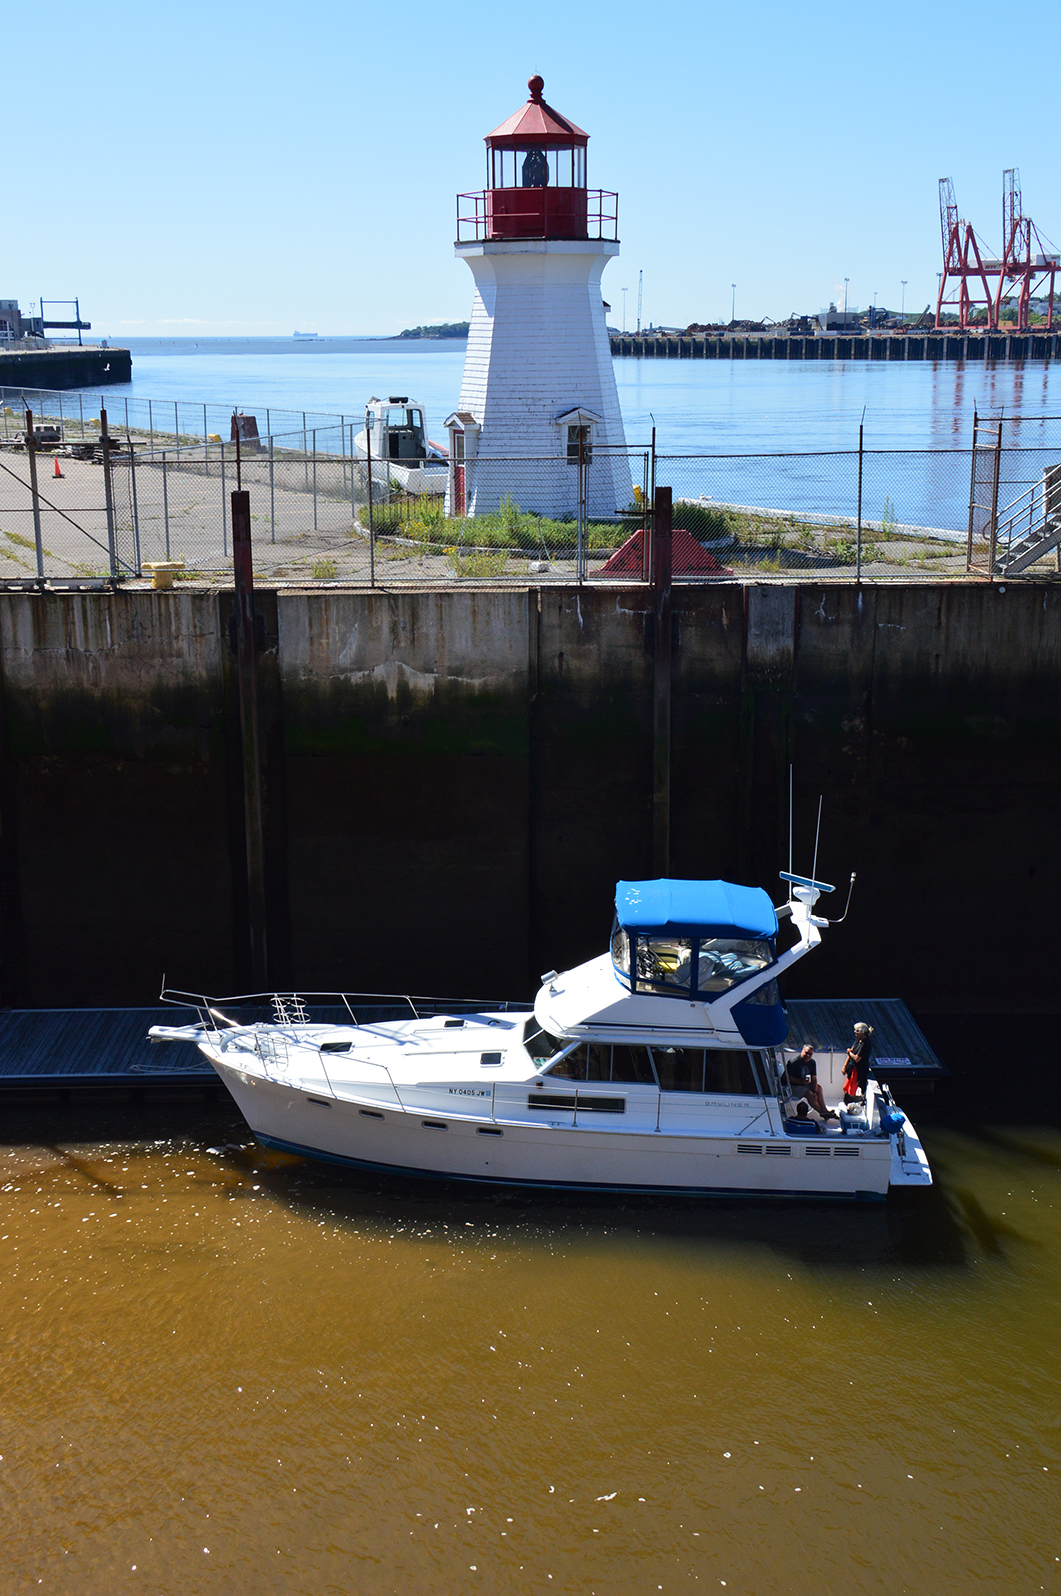 Tidal boating know the flow boats and places magazine this nvjuhfo Image collections